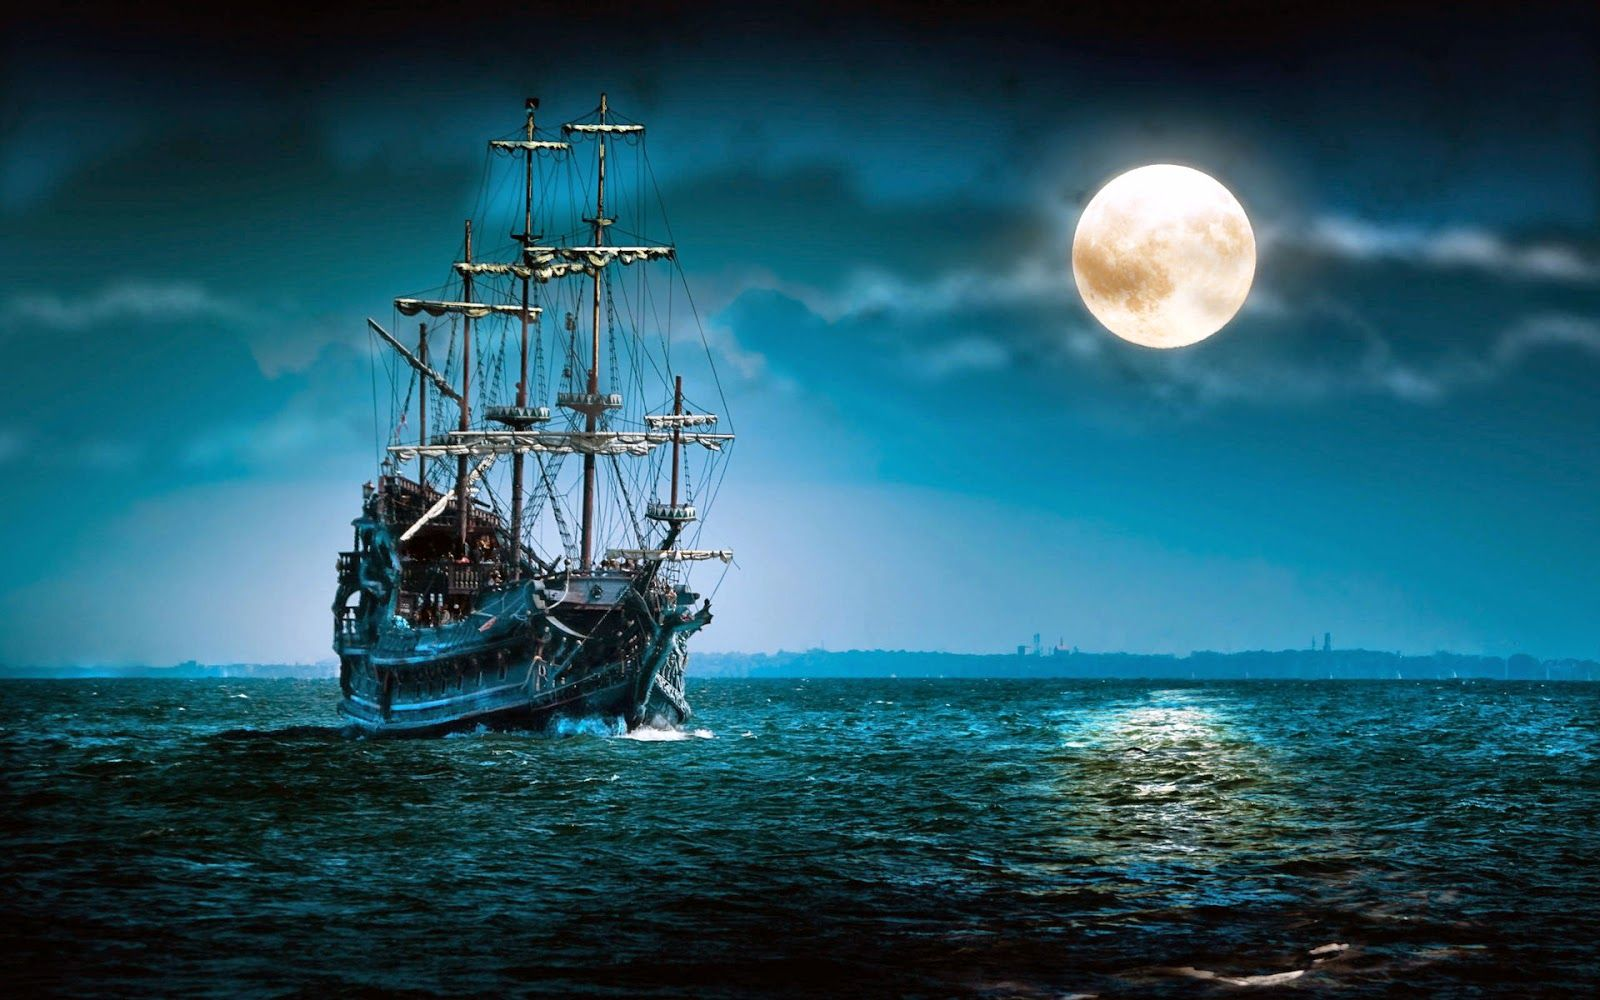 Ship In Sea Moon Hd Wallpaper Wallpapersxplore Free Hd Desktop Wallpapers With Images Old Sailing Ships Sailing Ships Ghost Ship